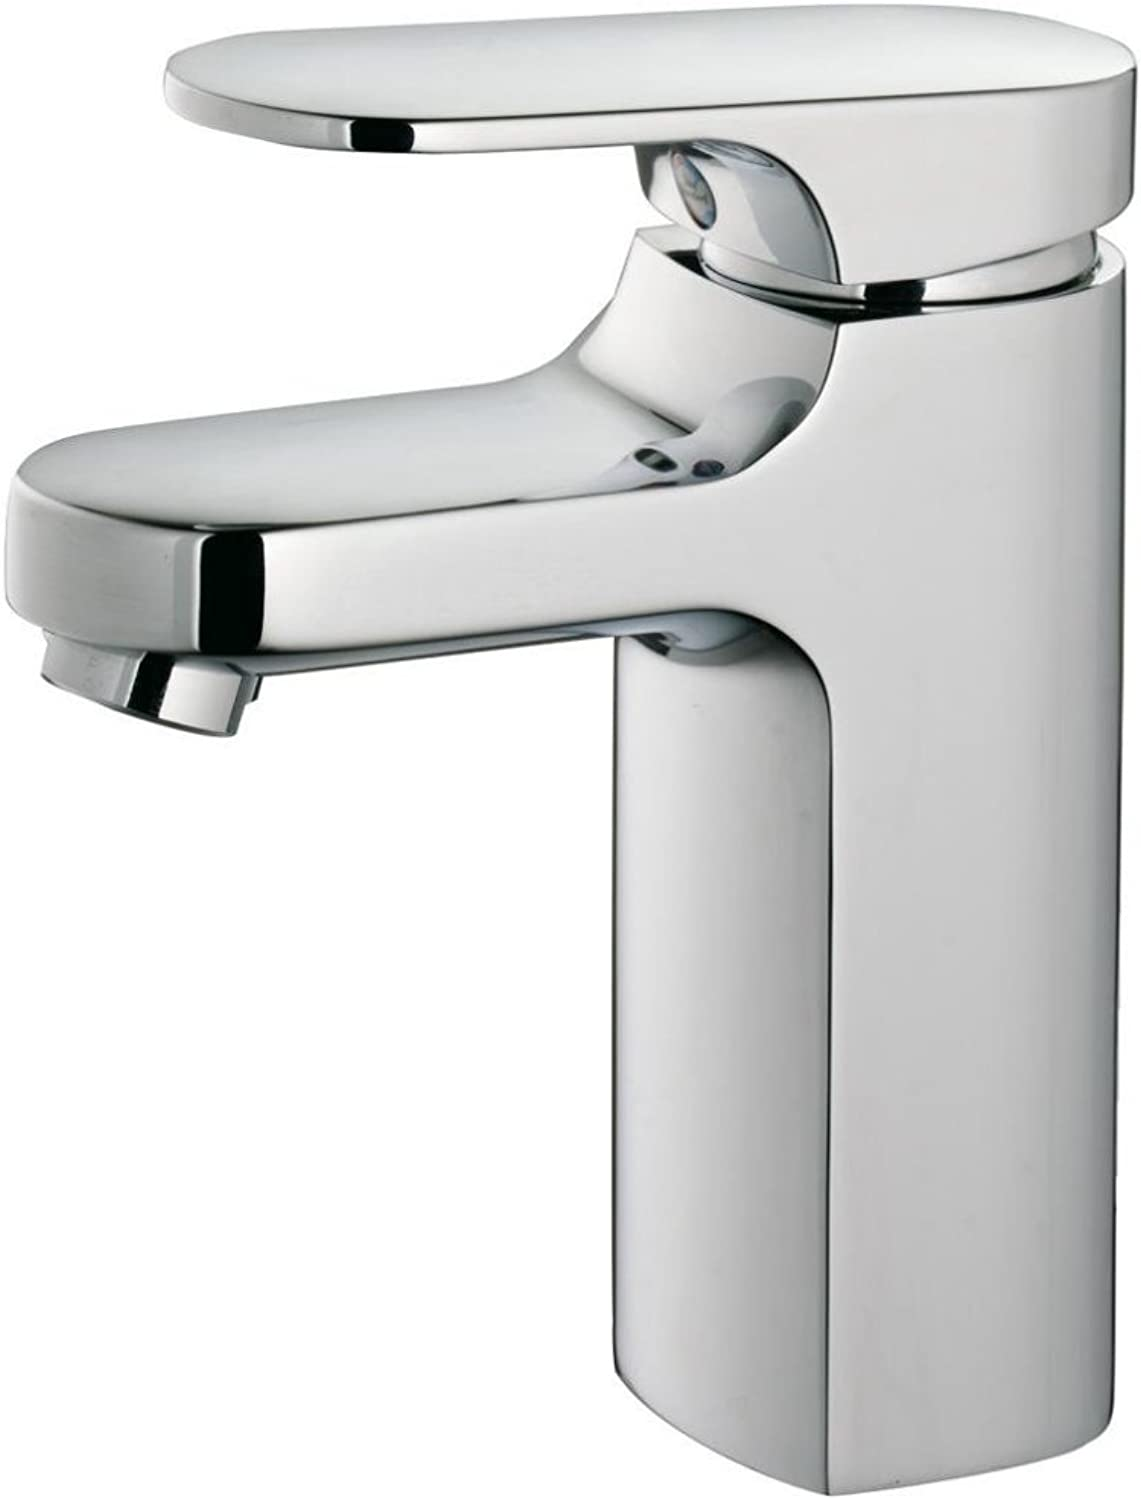 Ideal Standard Moments a3926aa Sink Mixer Mouth 92?Fless